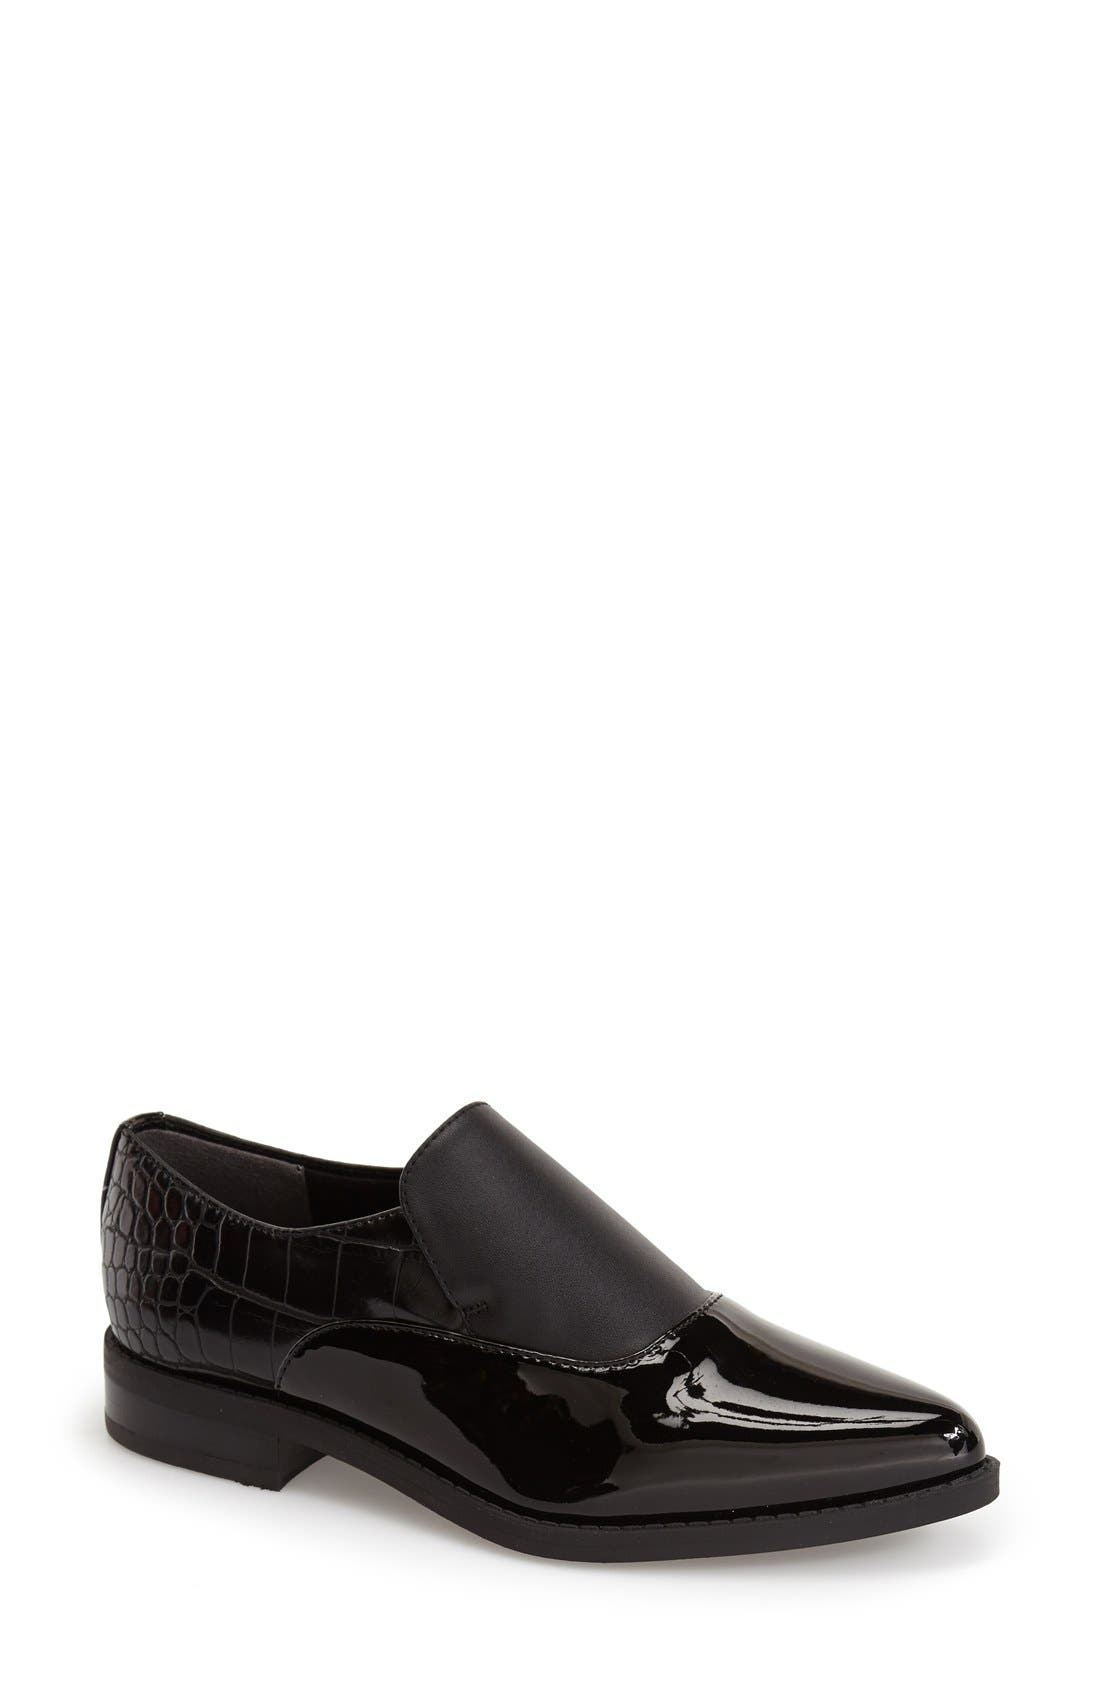 CIRCUS BY SAM EDELMAN 'Farrah' Pointy Toe Loafer, Main, color, 001